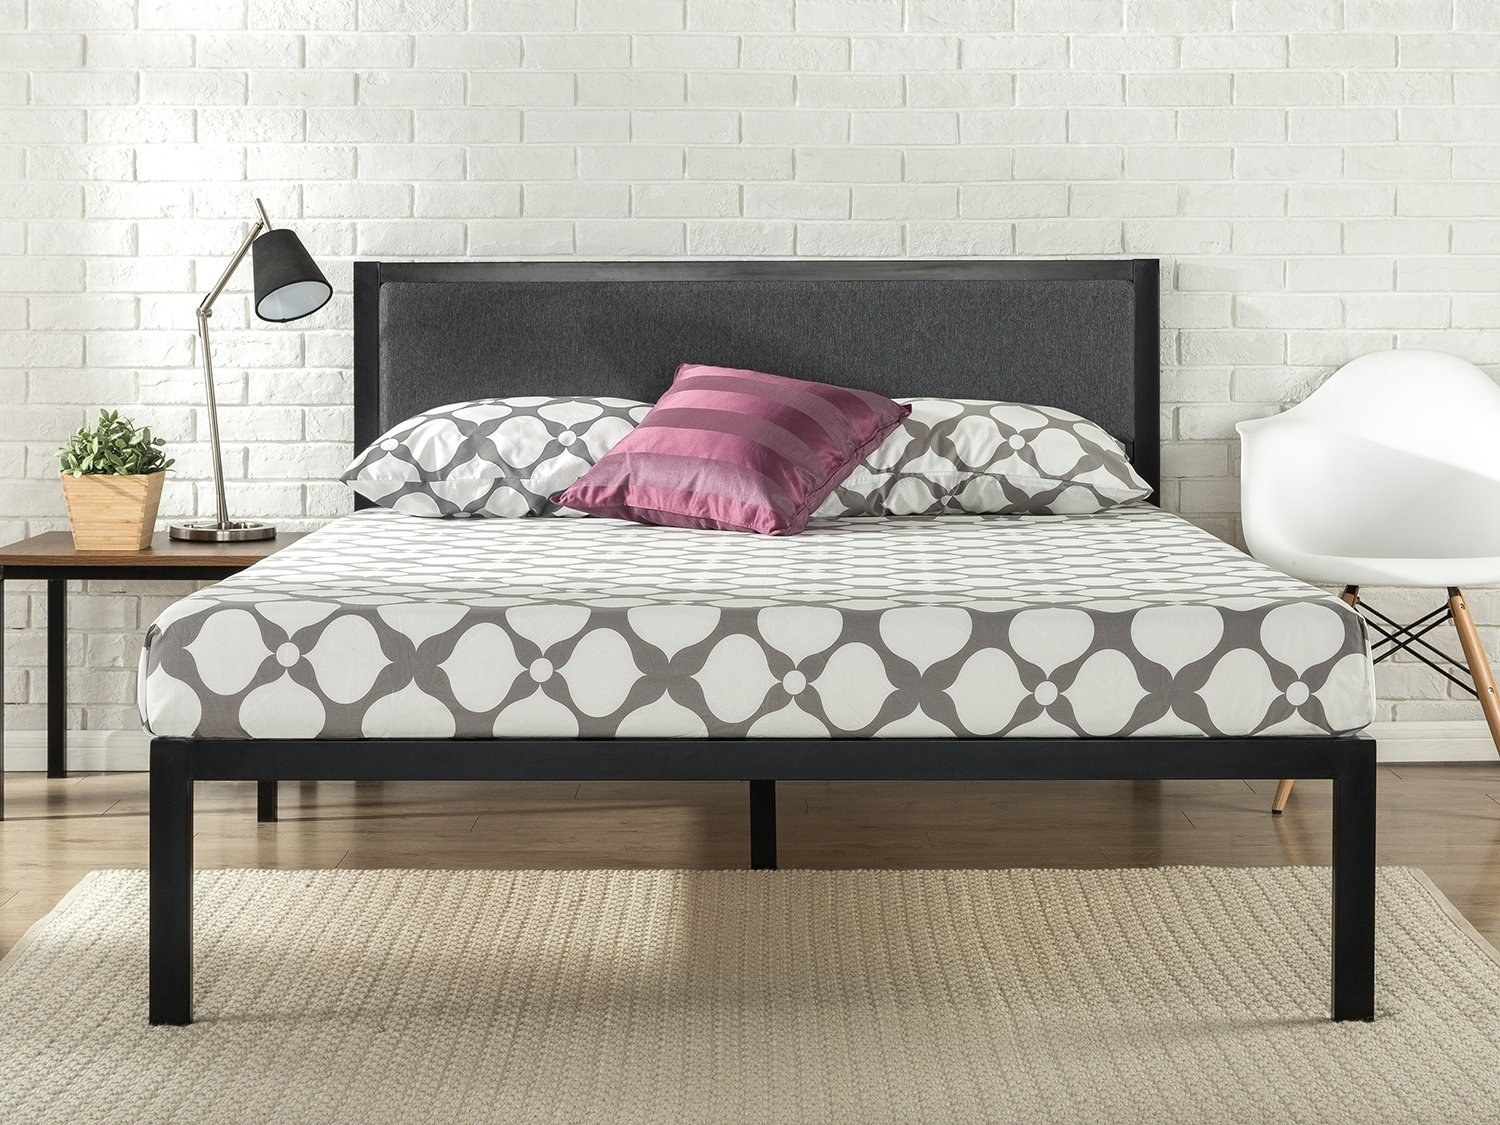 front view of the black bed frame